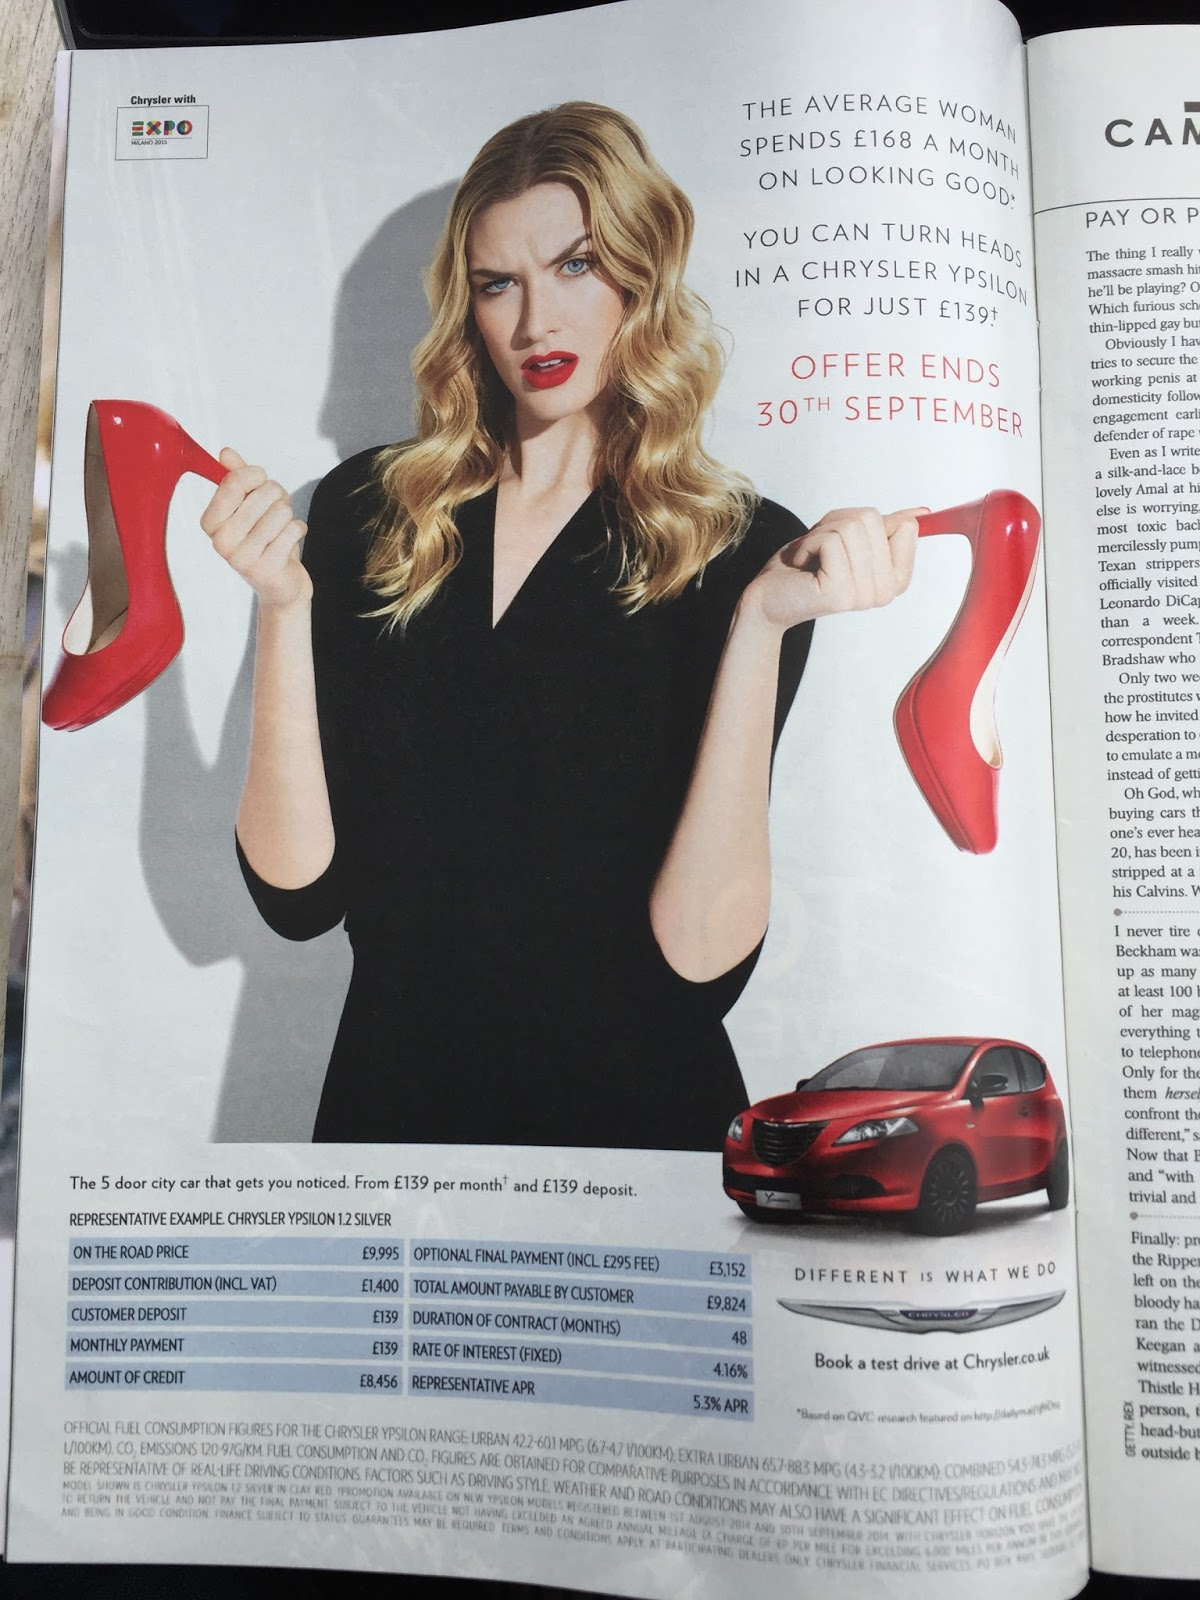 Chrysler Ypsilon vs. High Heels